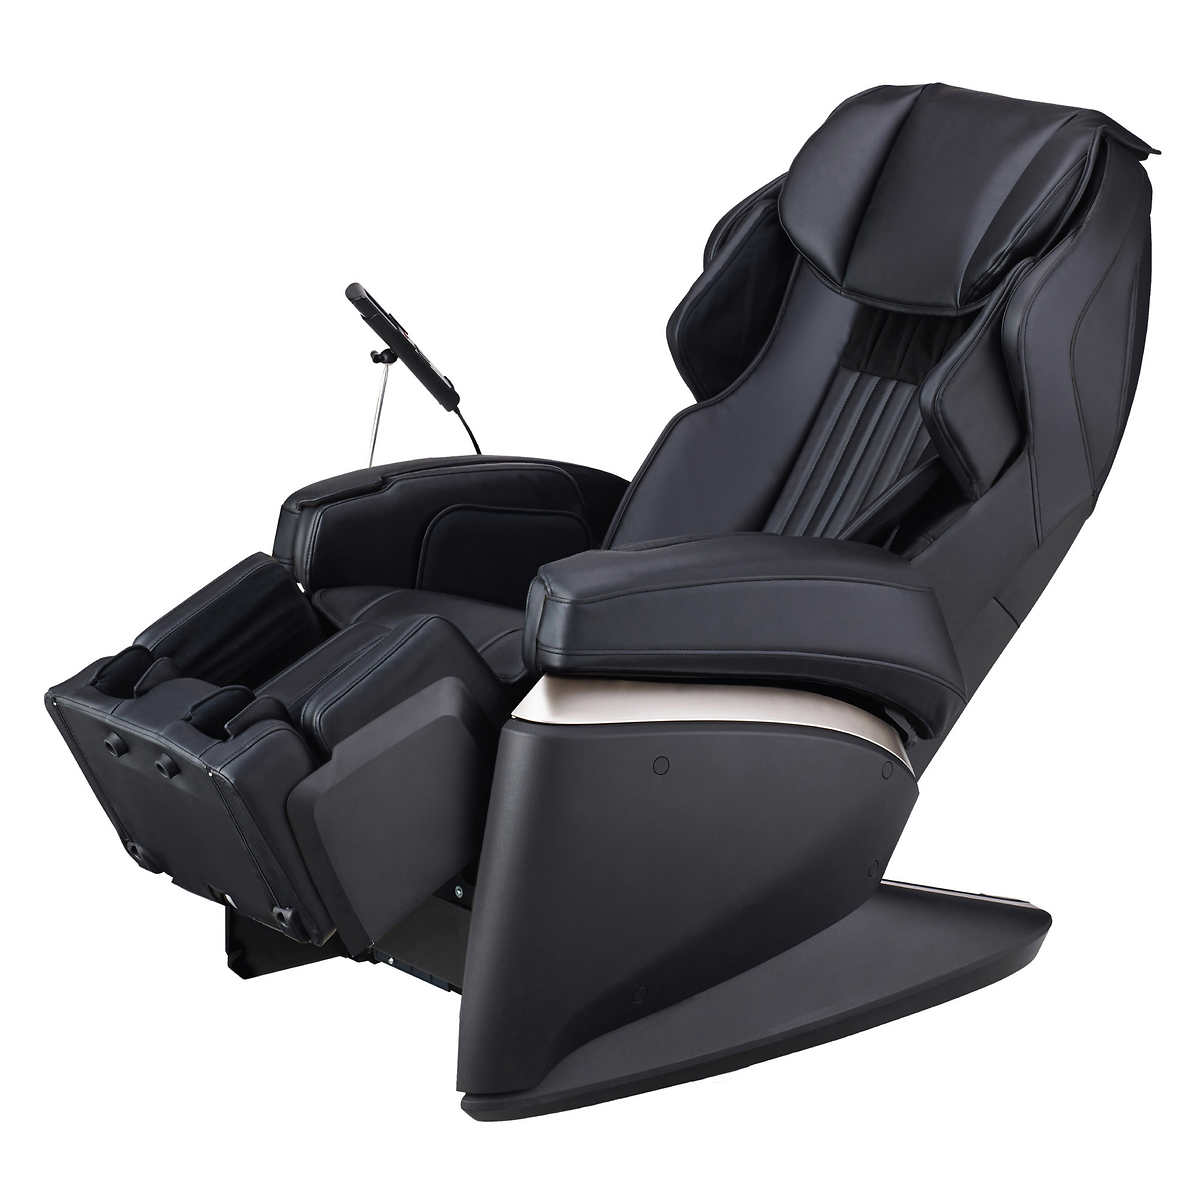 Professional massage chairs - Osaki Made In Japan 4s Massage Chair